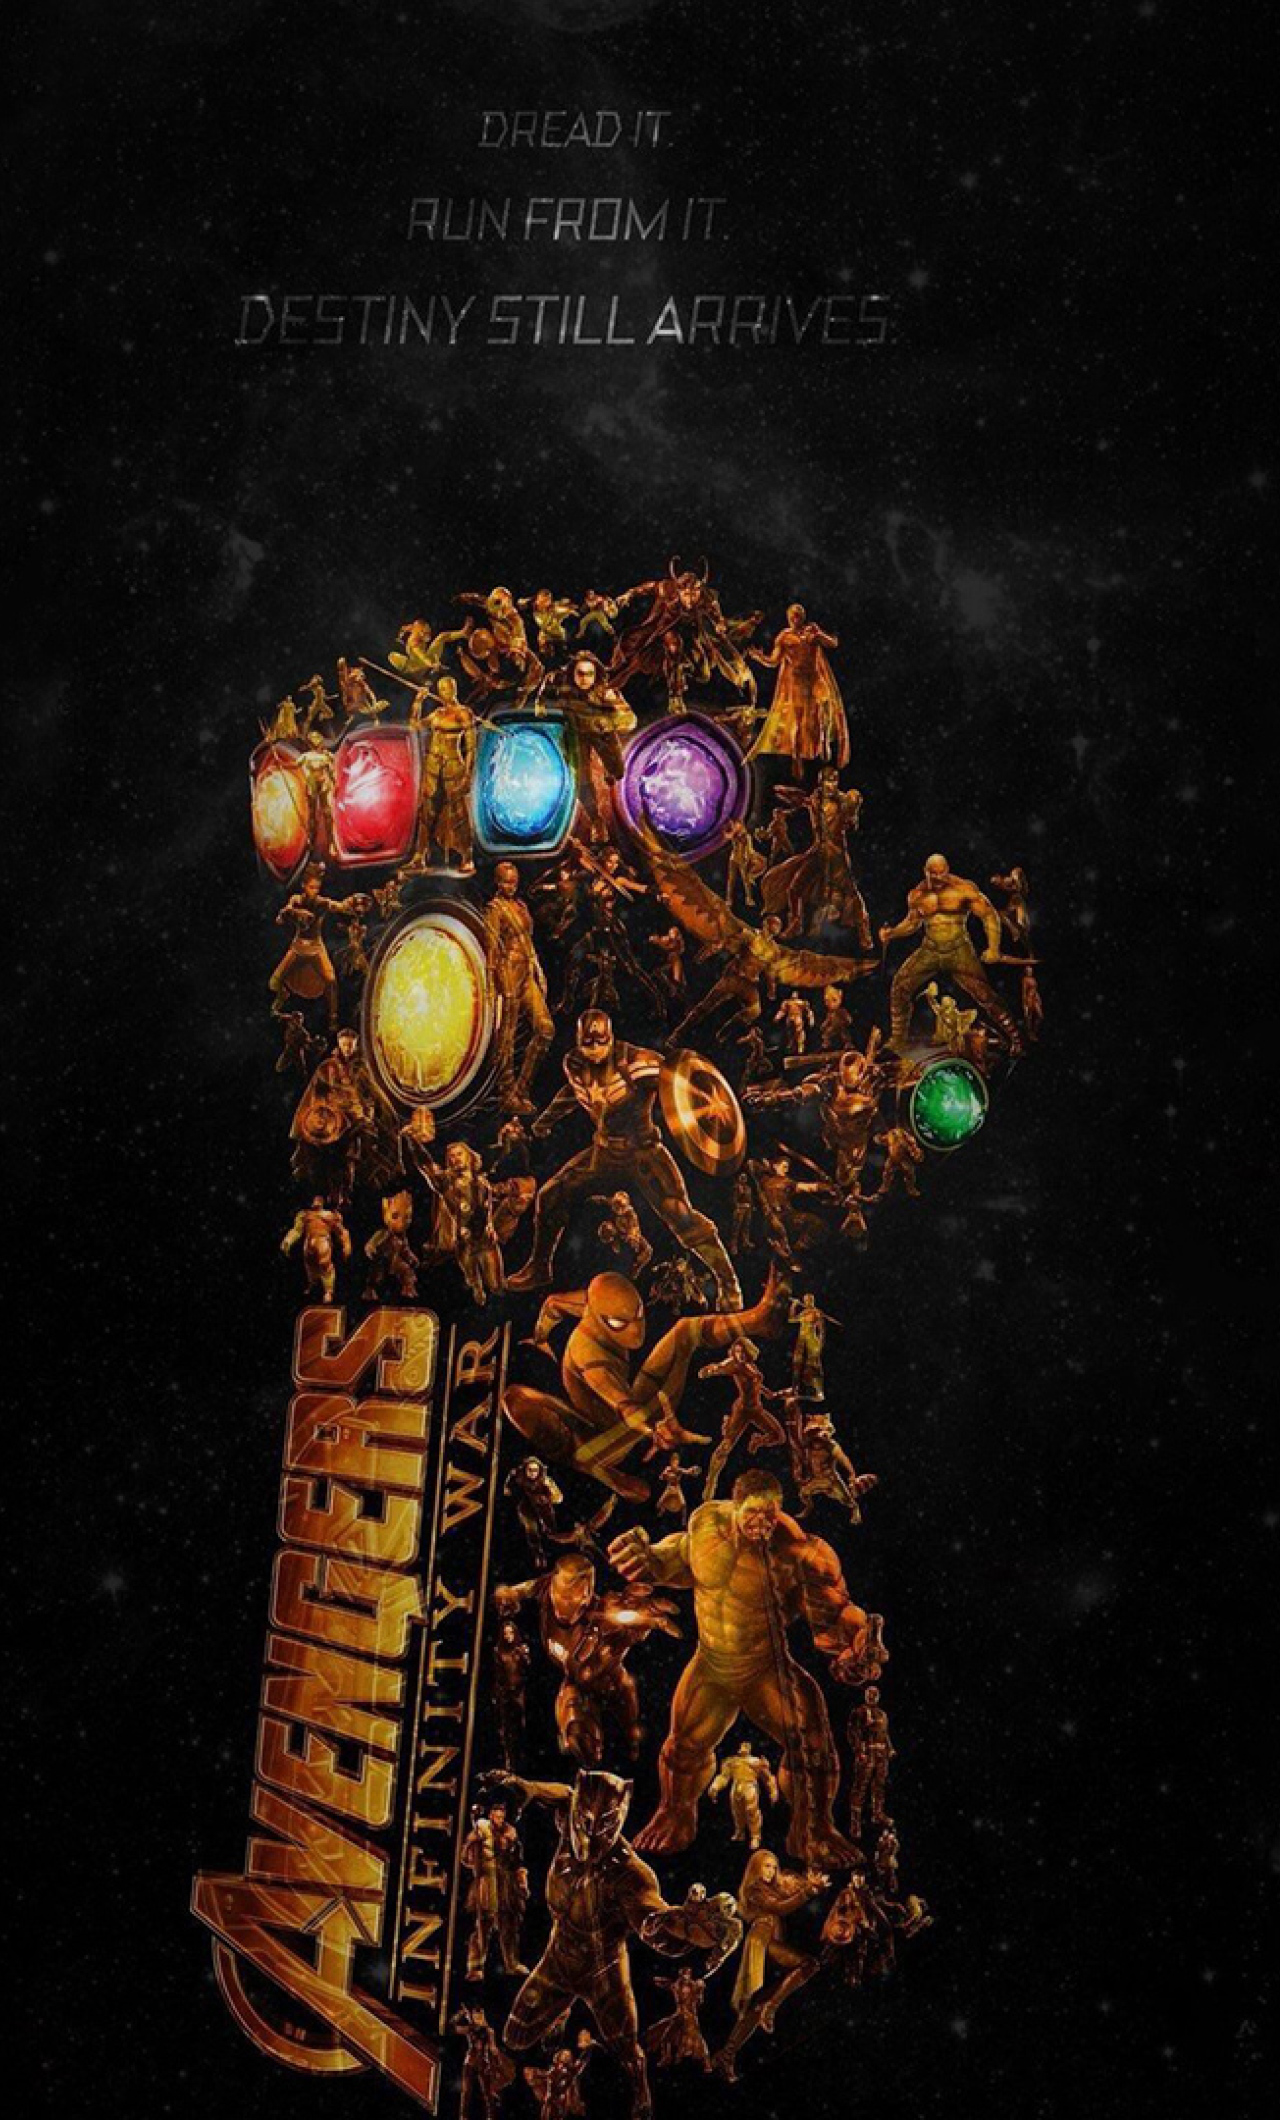 Download Avengers Infinity War Latest Poster 1280x2120 Resolution